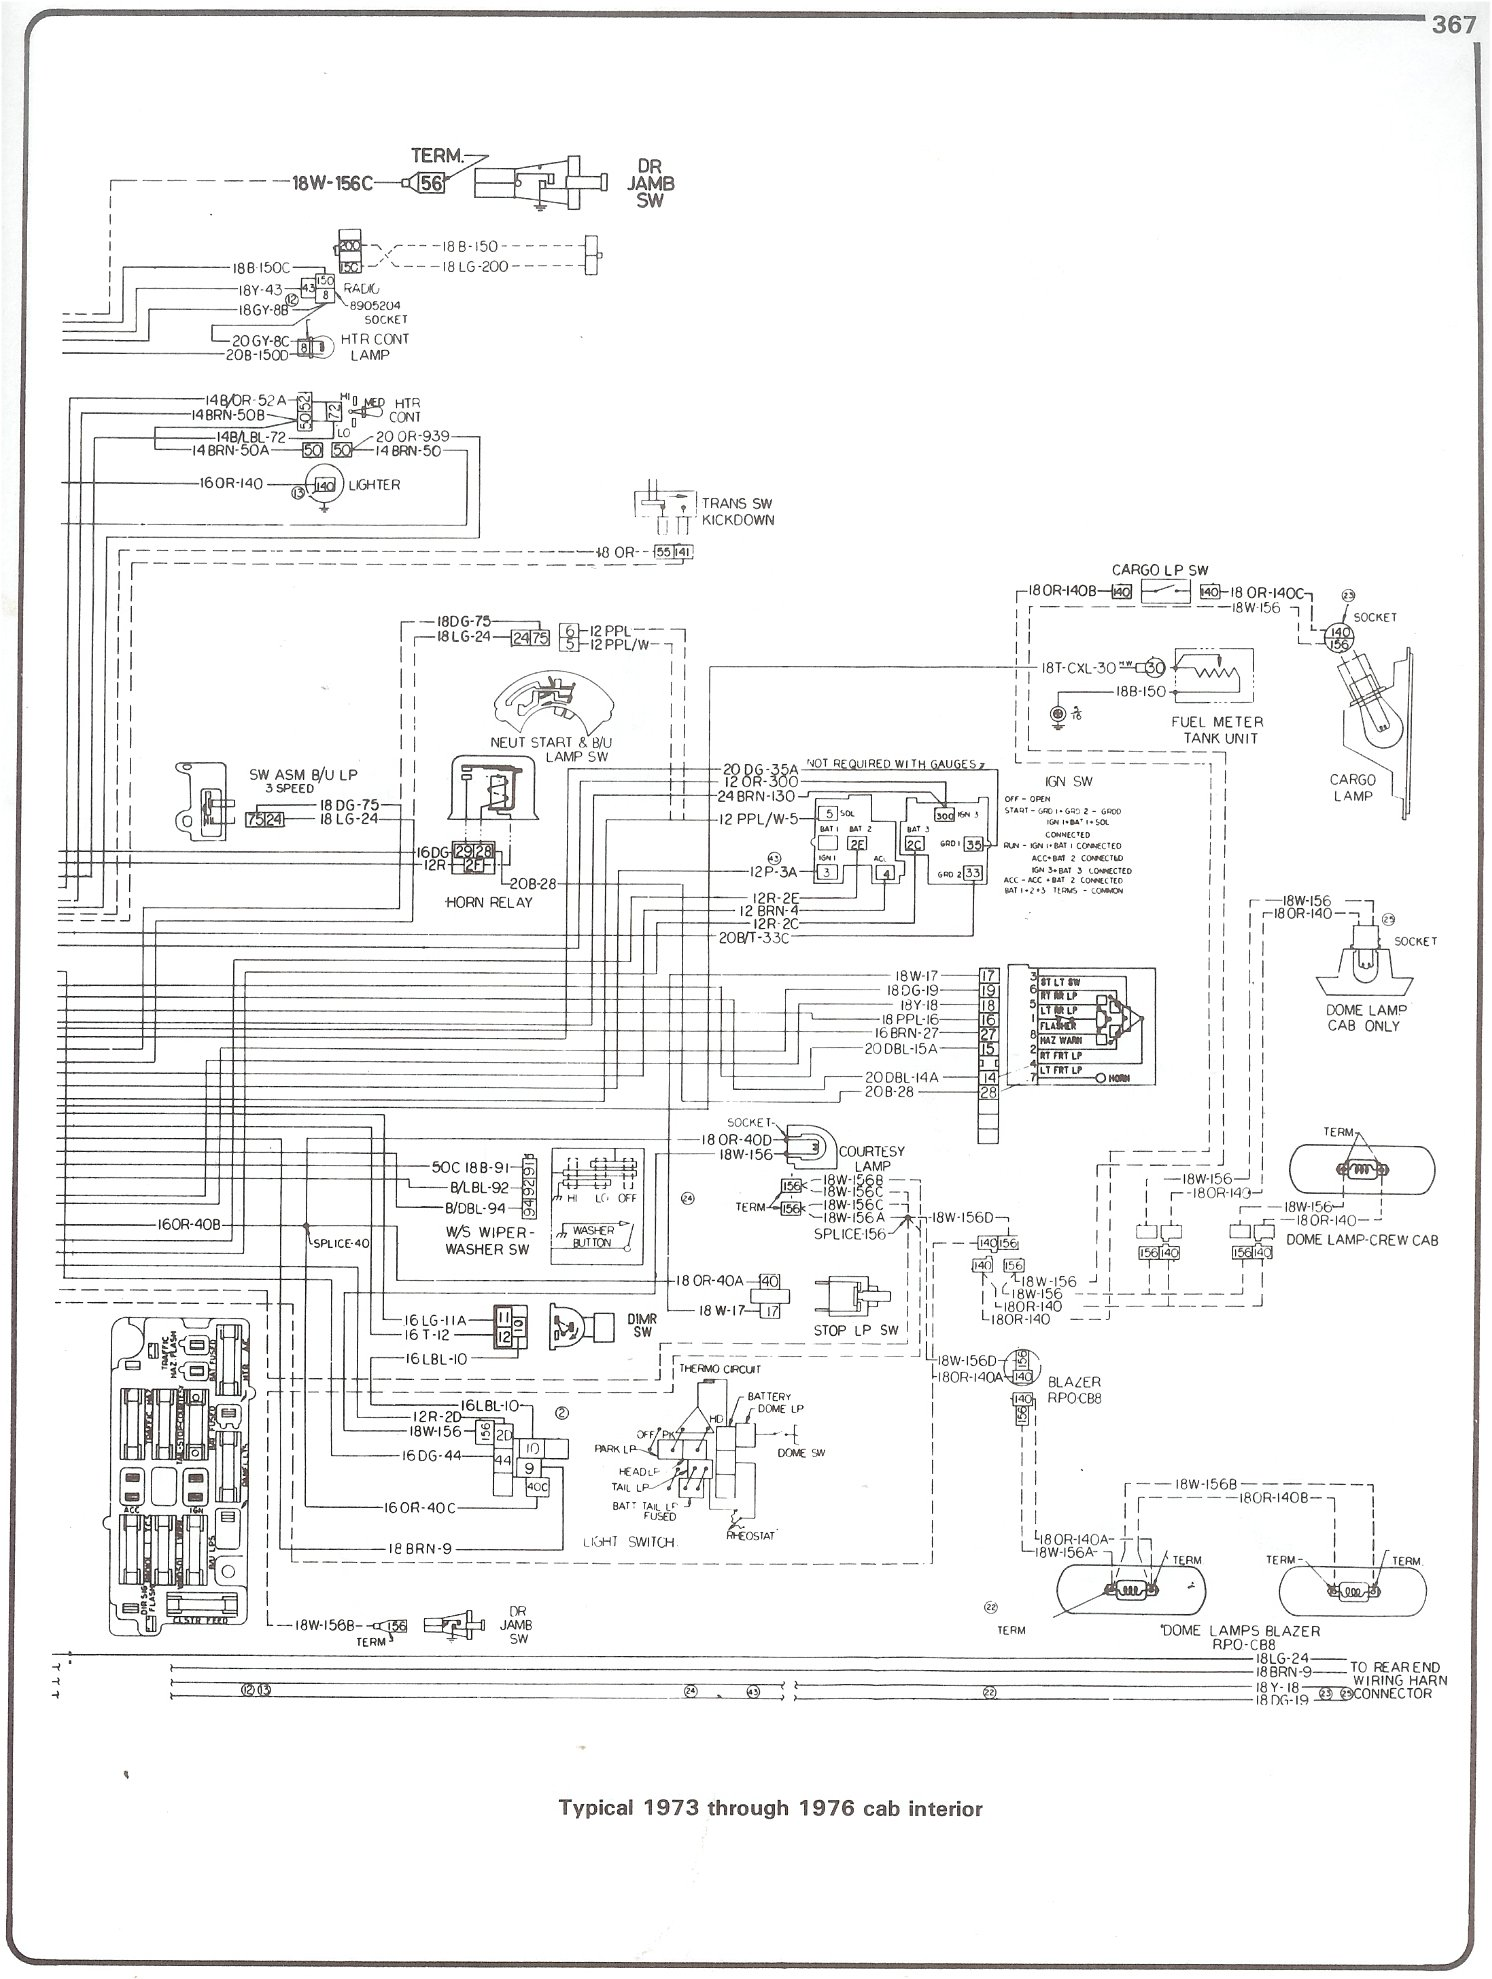 complete 73 87 wiring diagrams Wiring Diagram for 1989 Chevy 2500 at 1989 Chevy Truck Ignition Buzzer Wiring Diagram